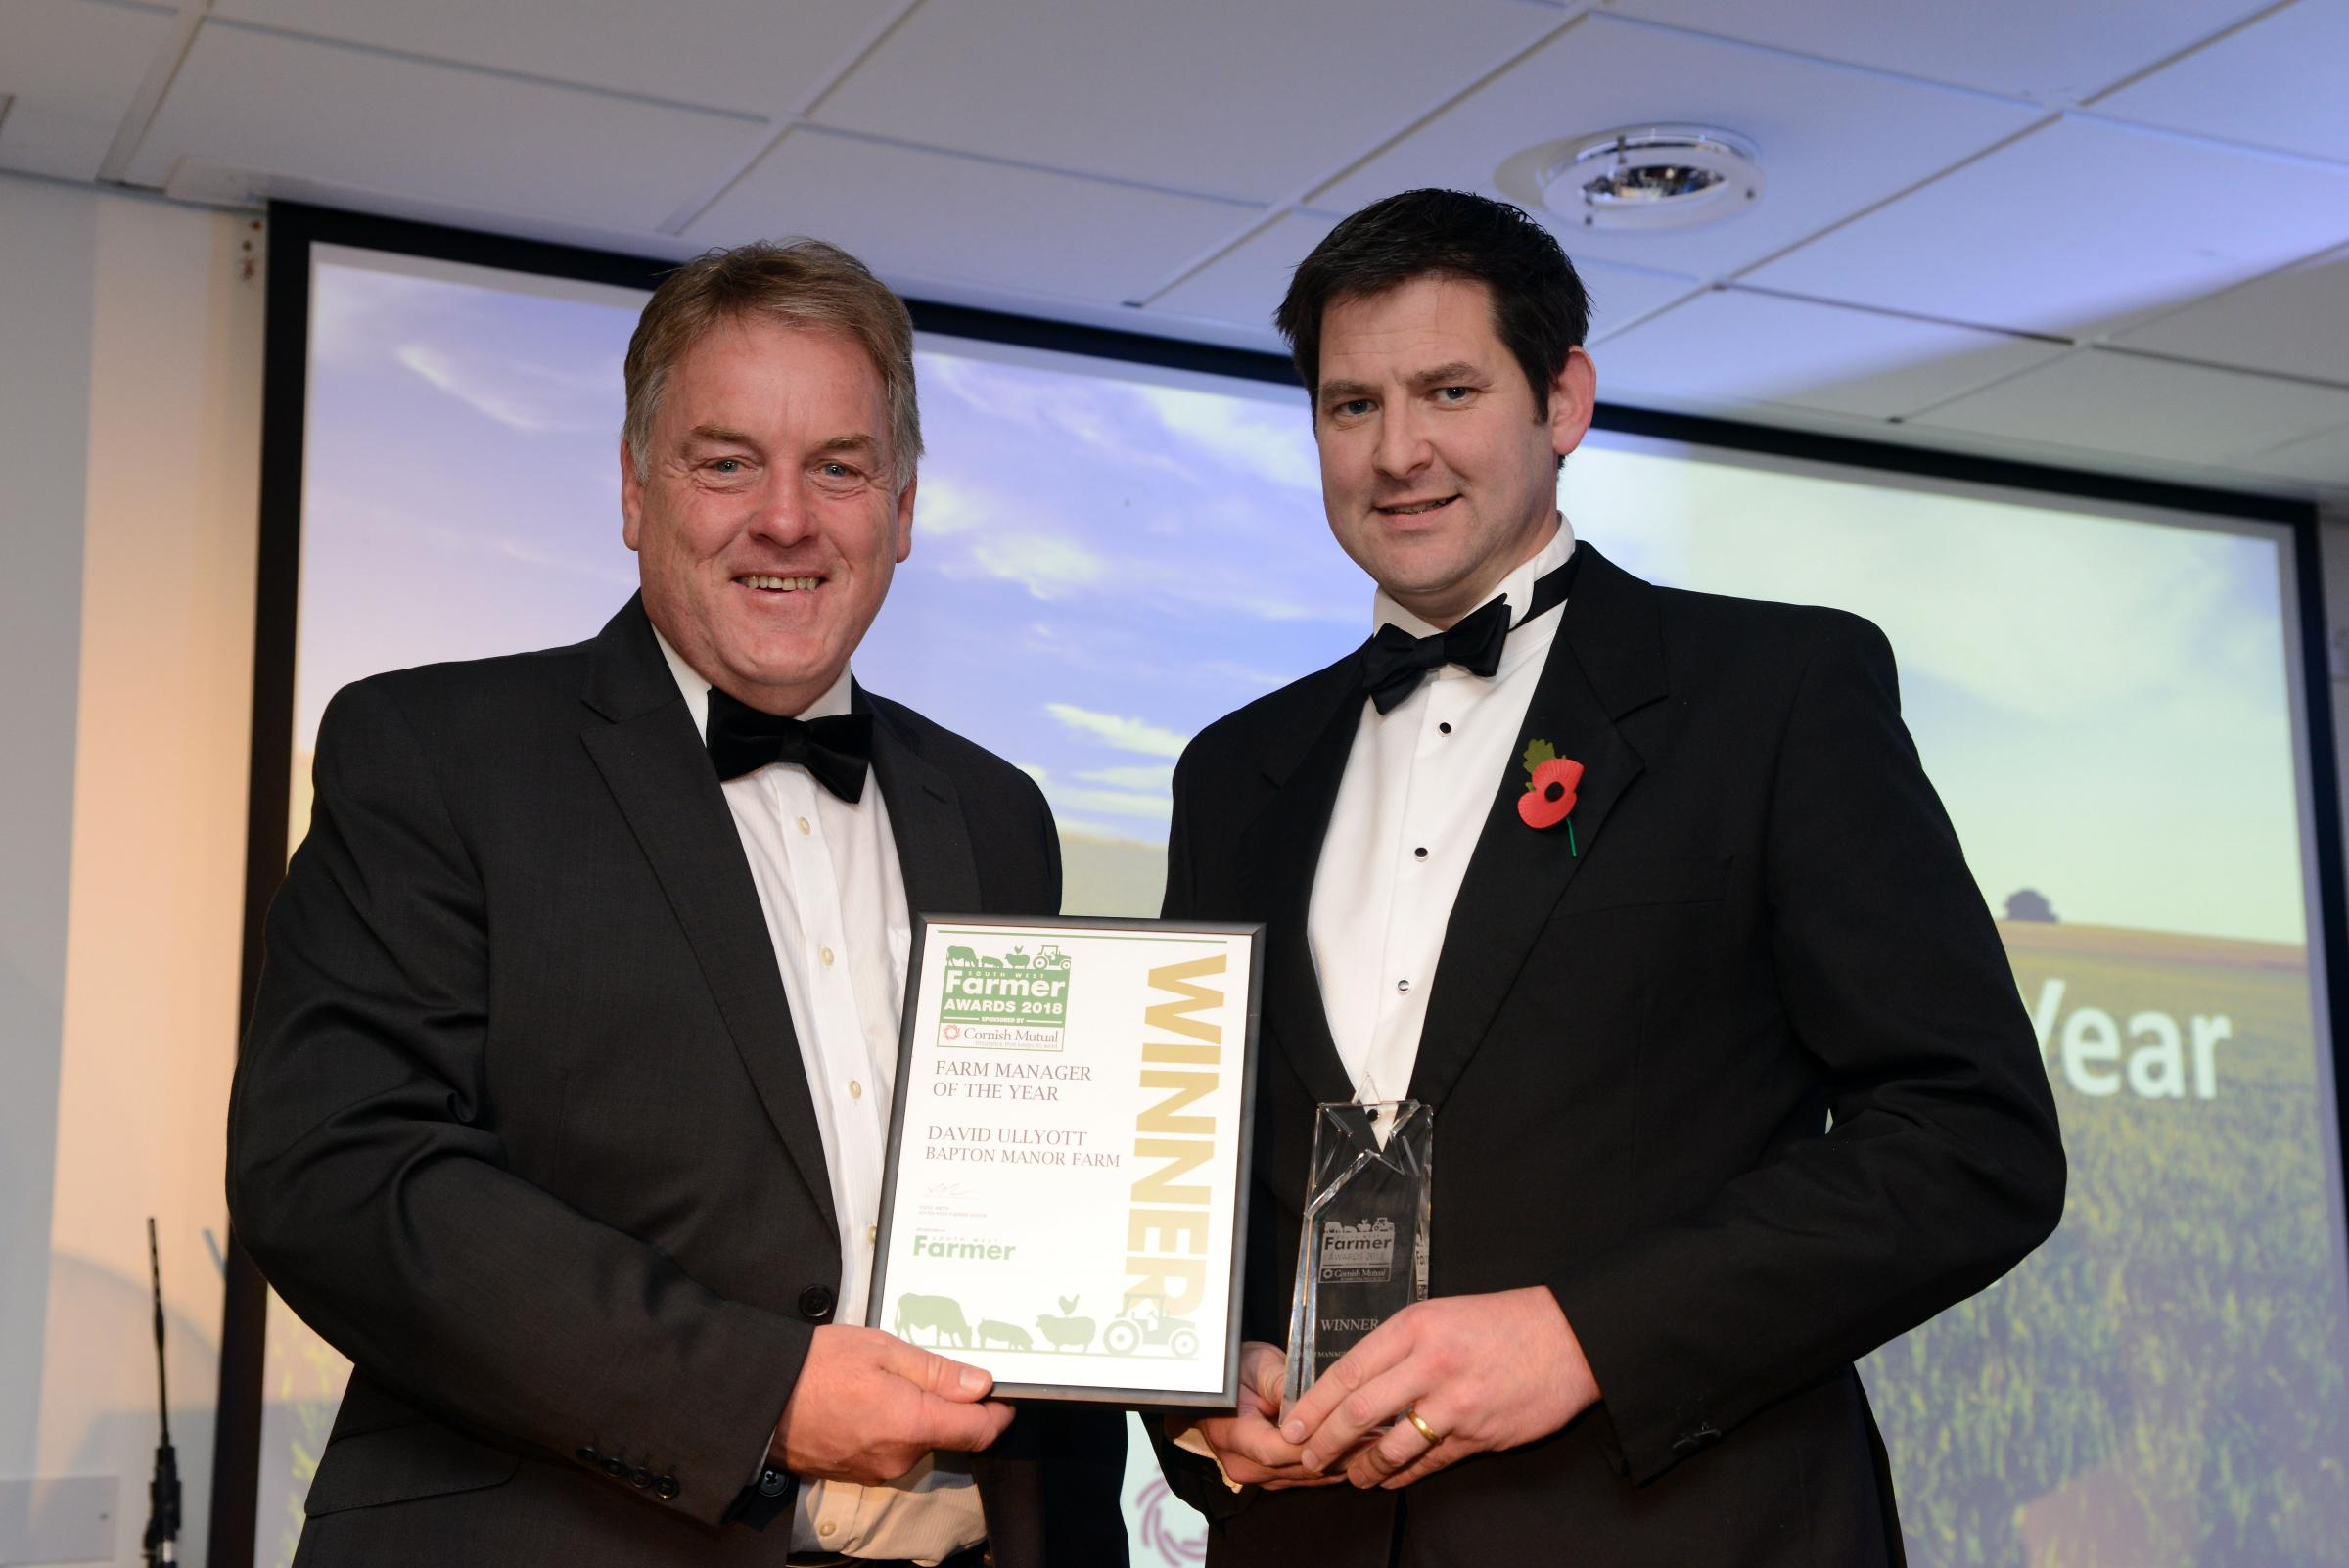 Stephen Dennis of the Farming Community Network with winner of the Farm Manager award David Ullyott from Bapton Manor Farm